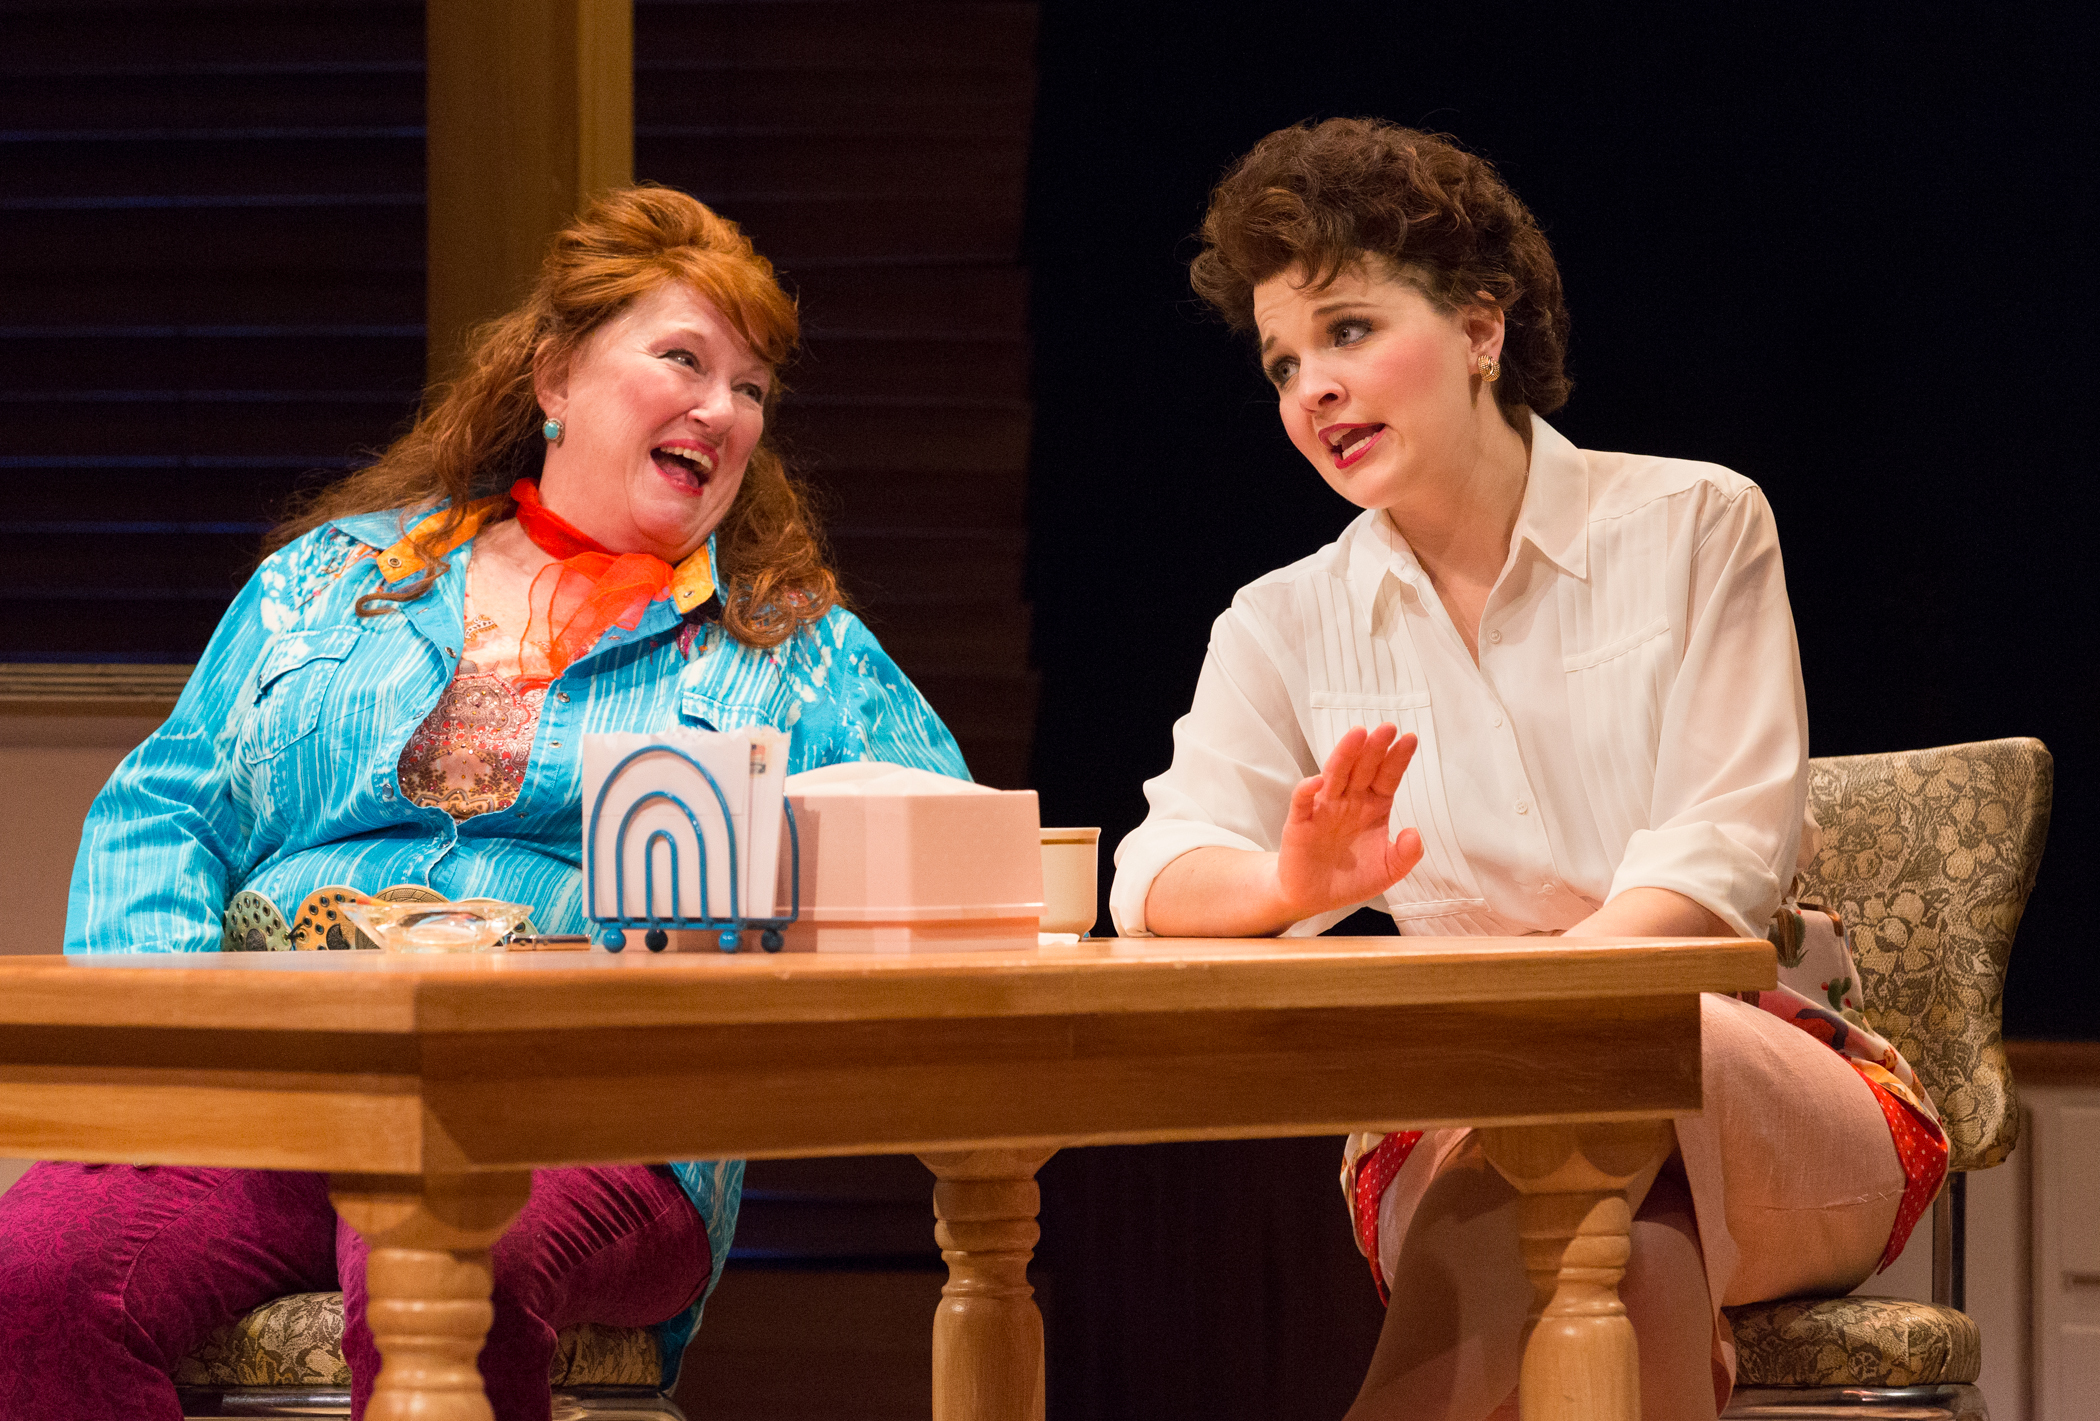 PHOTOS COURTESY OF MARK GAVIN / (Left to right) Jo Twiss and Jessica Wagner star as Louise and Patsy Cline in Always… Patsy Cline at the Bristol Riverside .